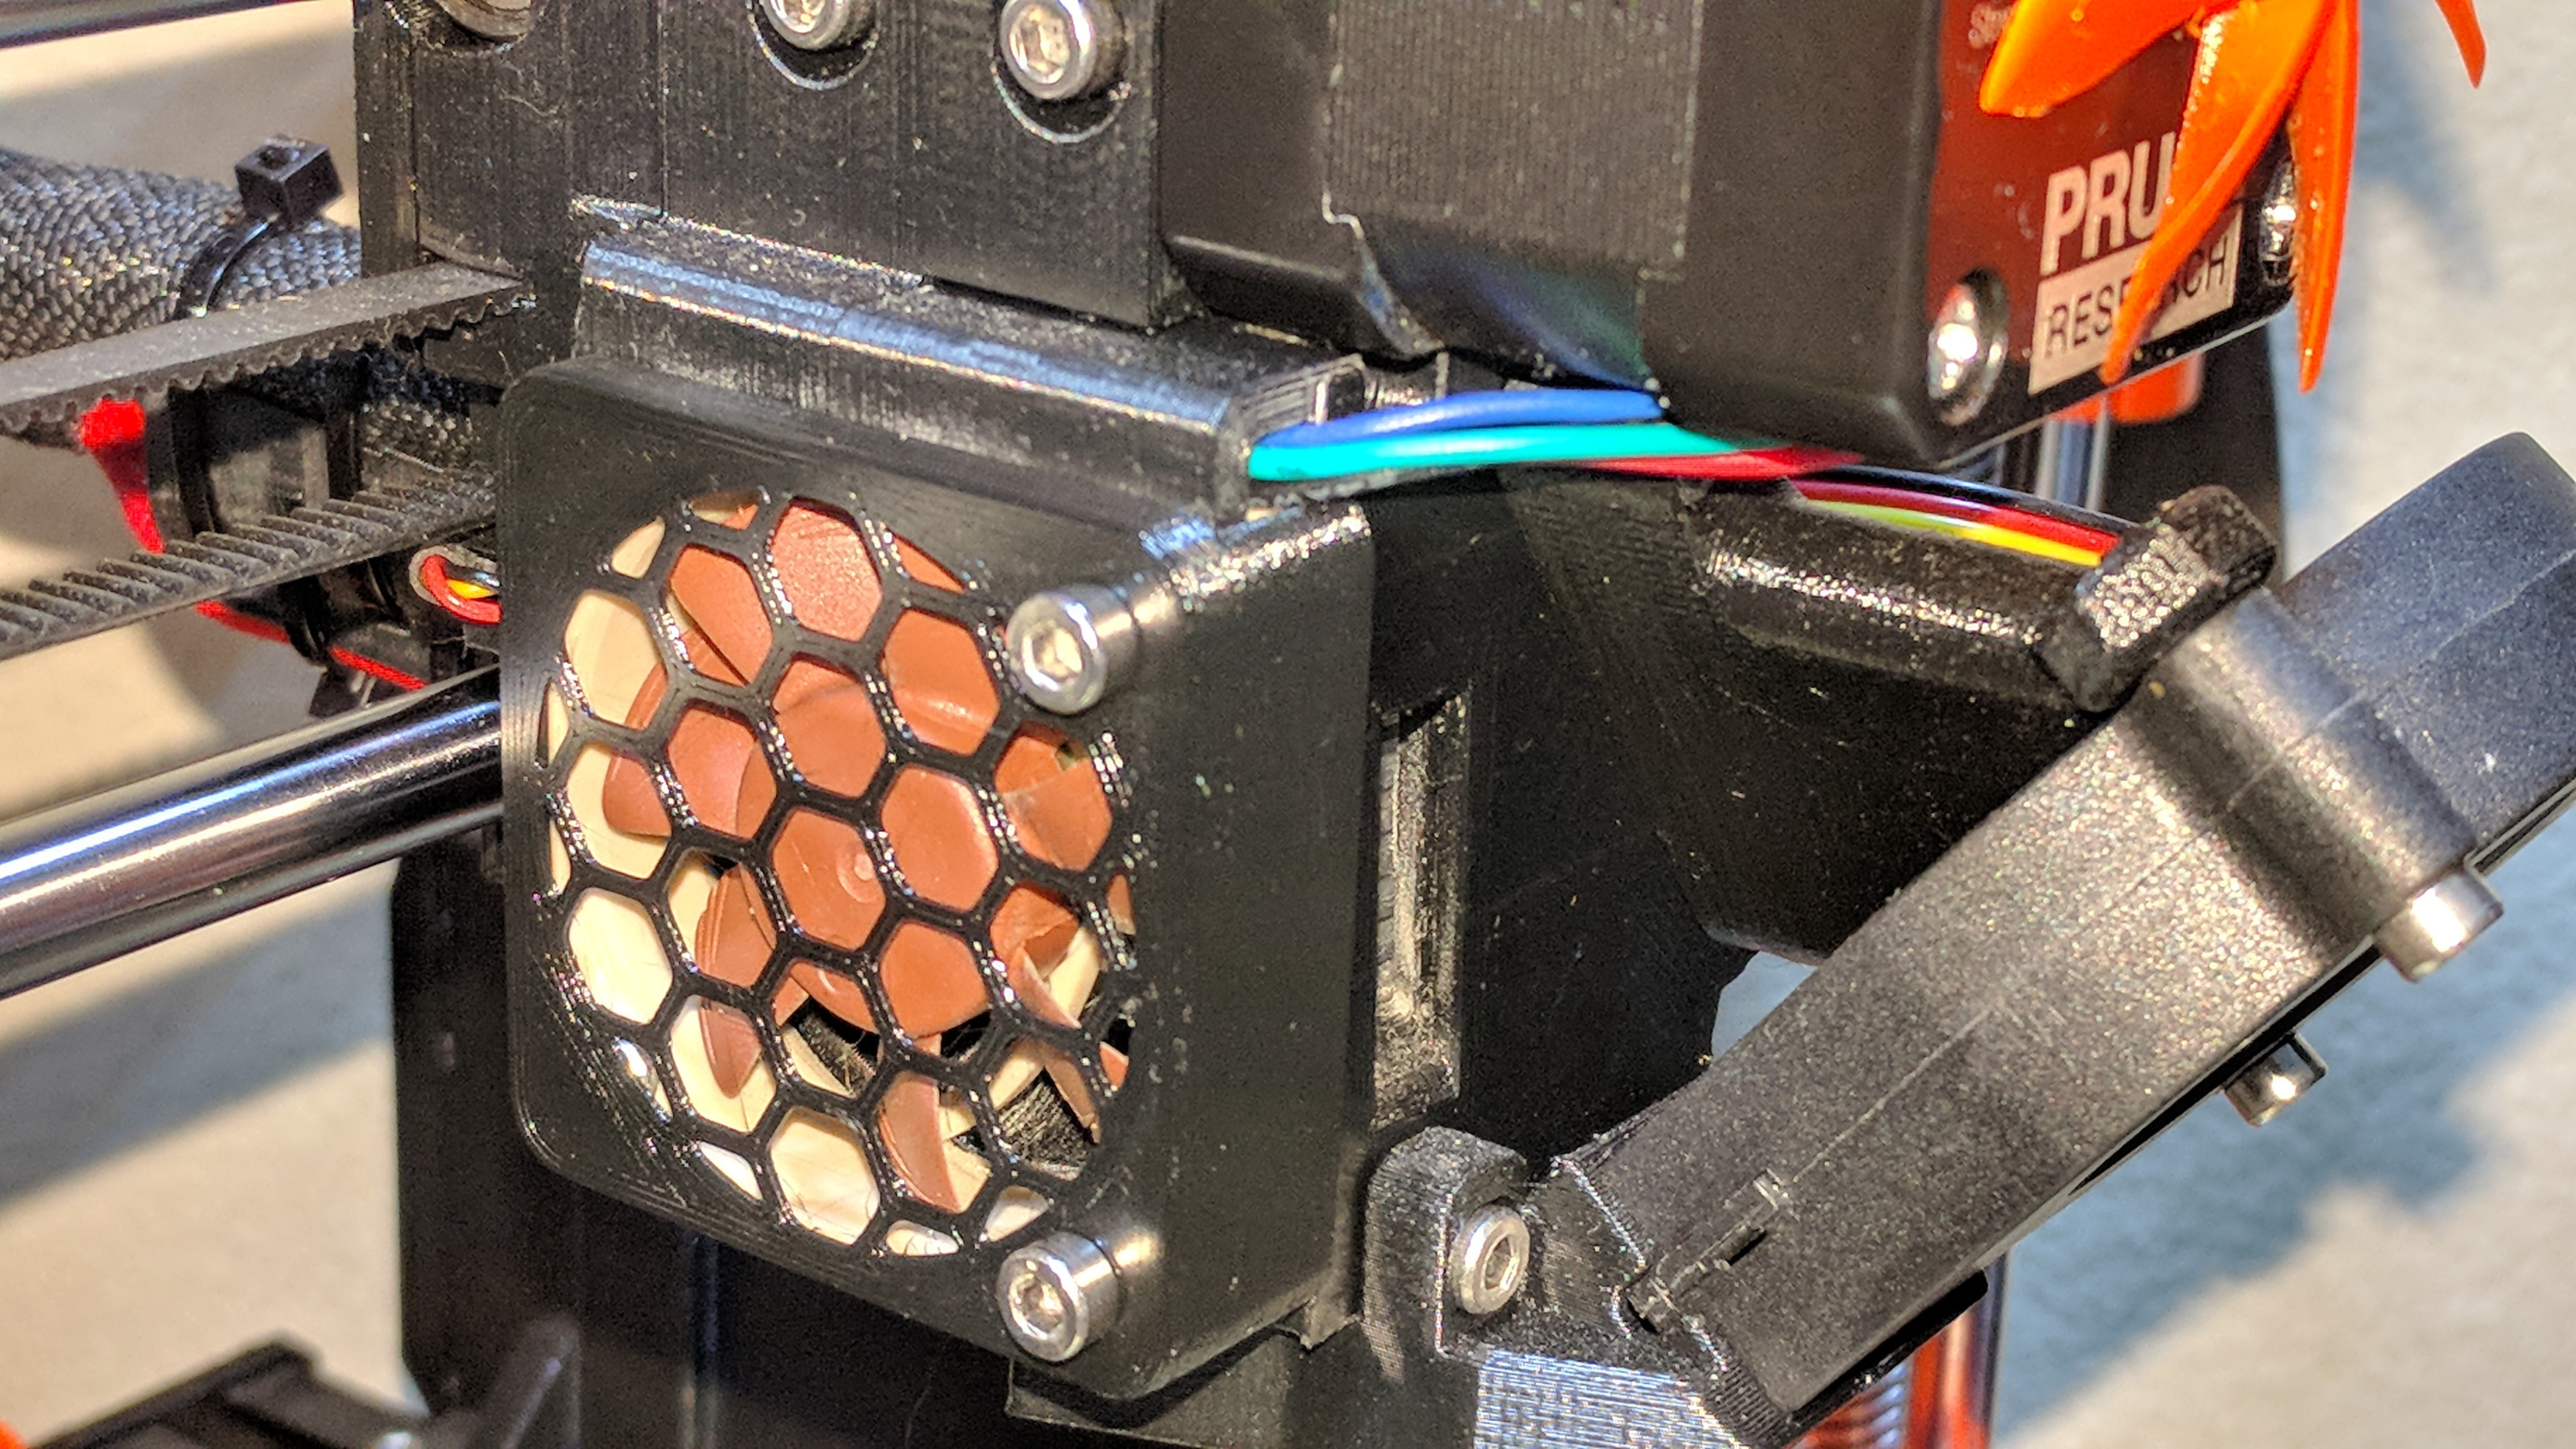 Prusa i3 MK3 Noctua Extruder fan cover by Petclaud - Thingiverse